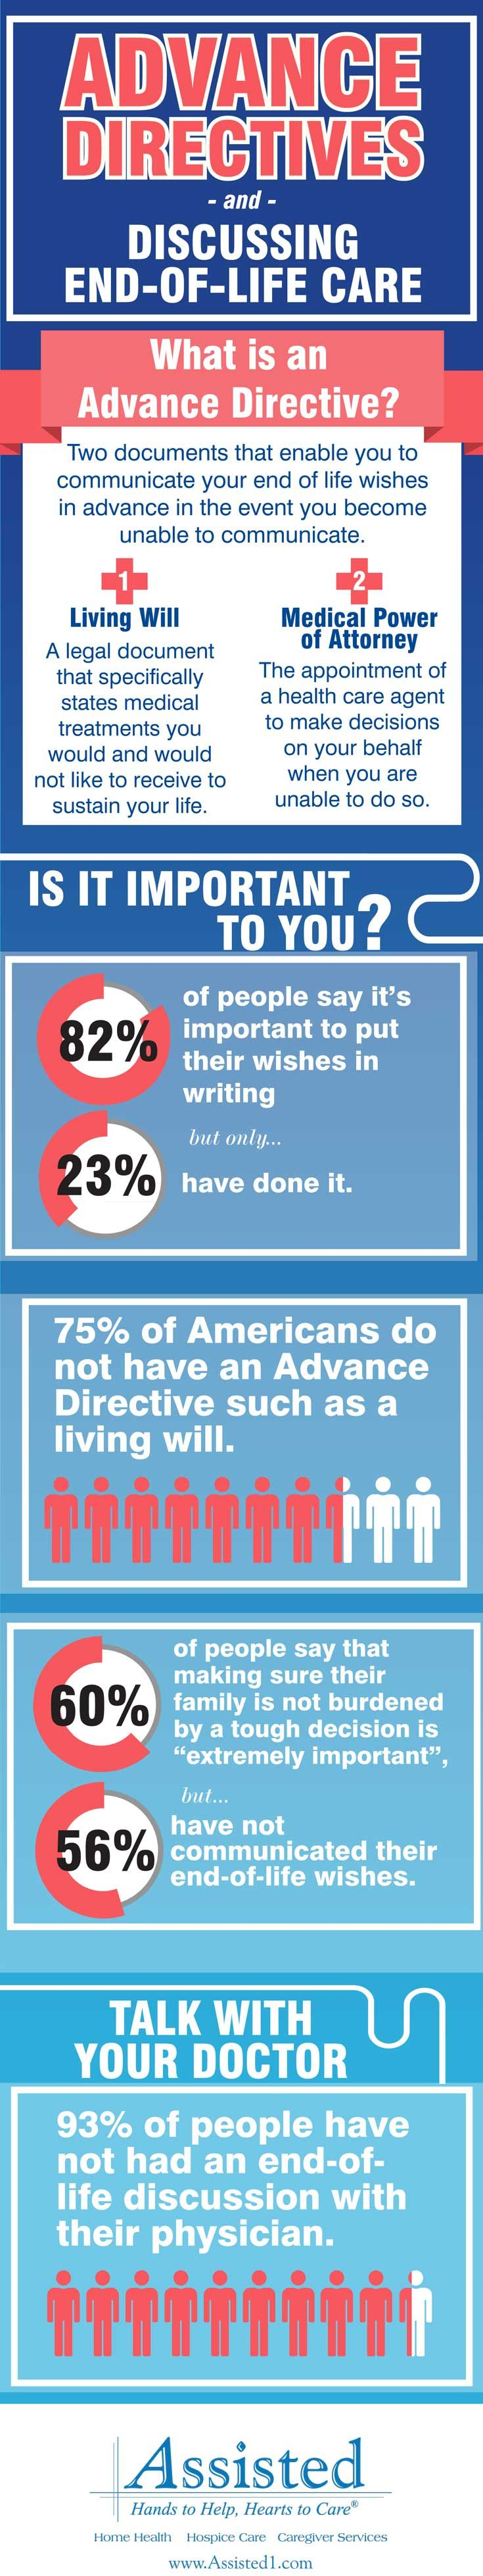 Does your physician and loved ones know what kind of medical care you would want if you were hurt or too ill to express your wishes? Read about the importance of having an Advance Directive on our blog at http://www.assisted1.com/end-of-life-care-and-the-advance-directive/   #AdvanceDirective #LivingWill #PowerOfAttorney #Hospice #TheAssistedDifference